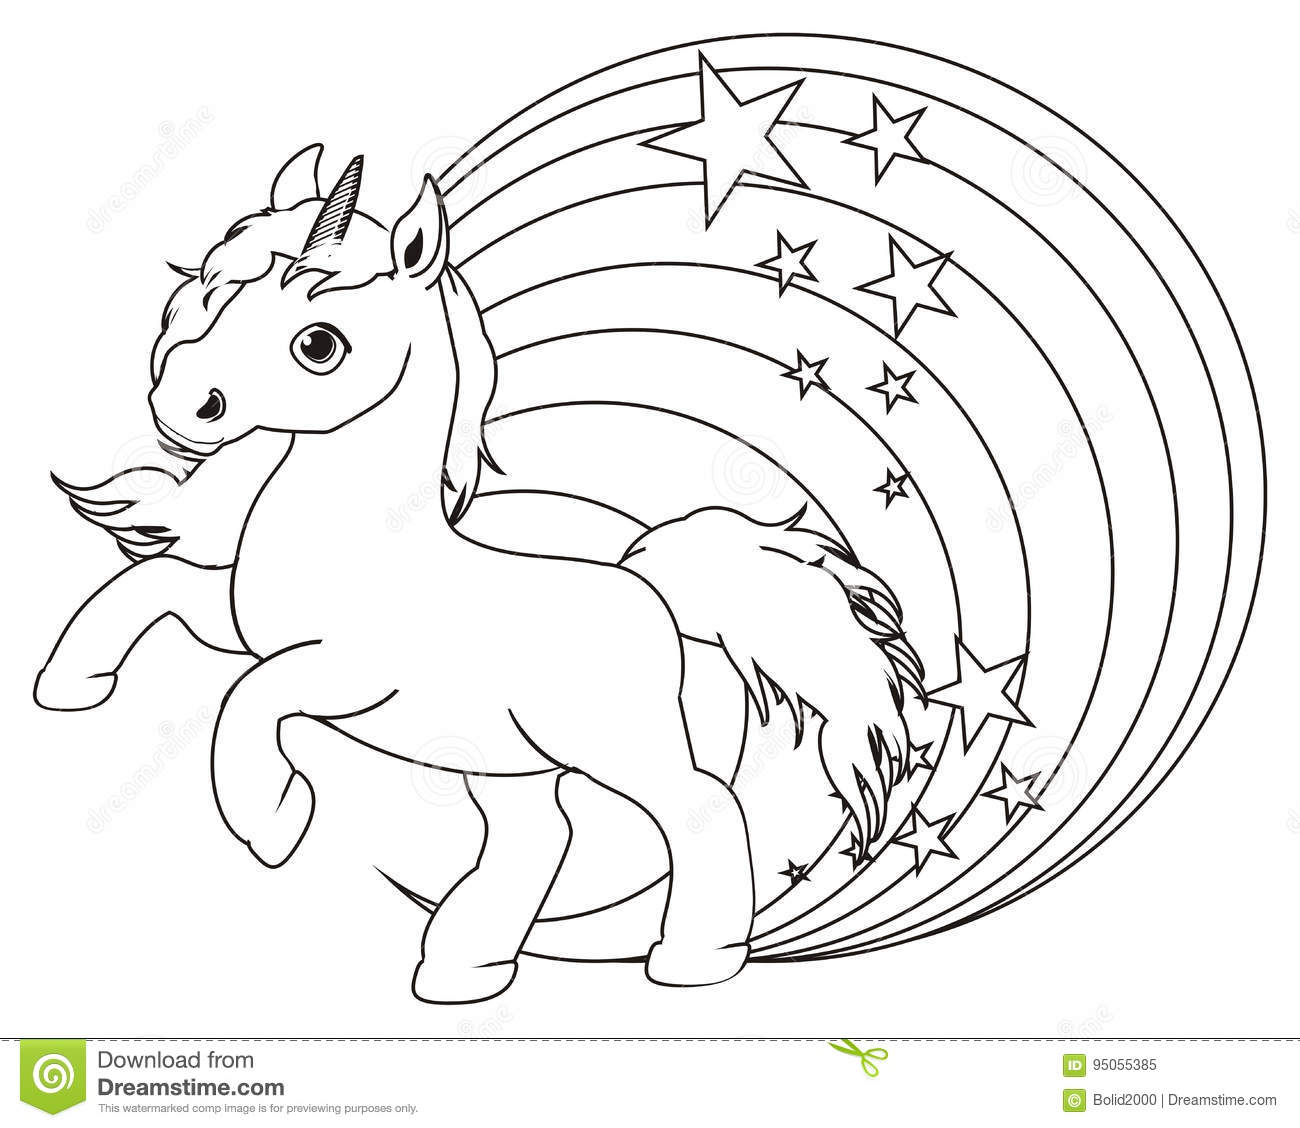 Unicorn Rainbow Coloring Pages - Free Coloring Page